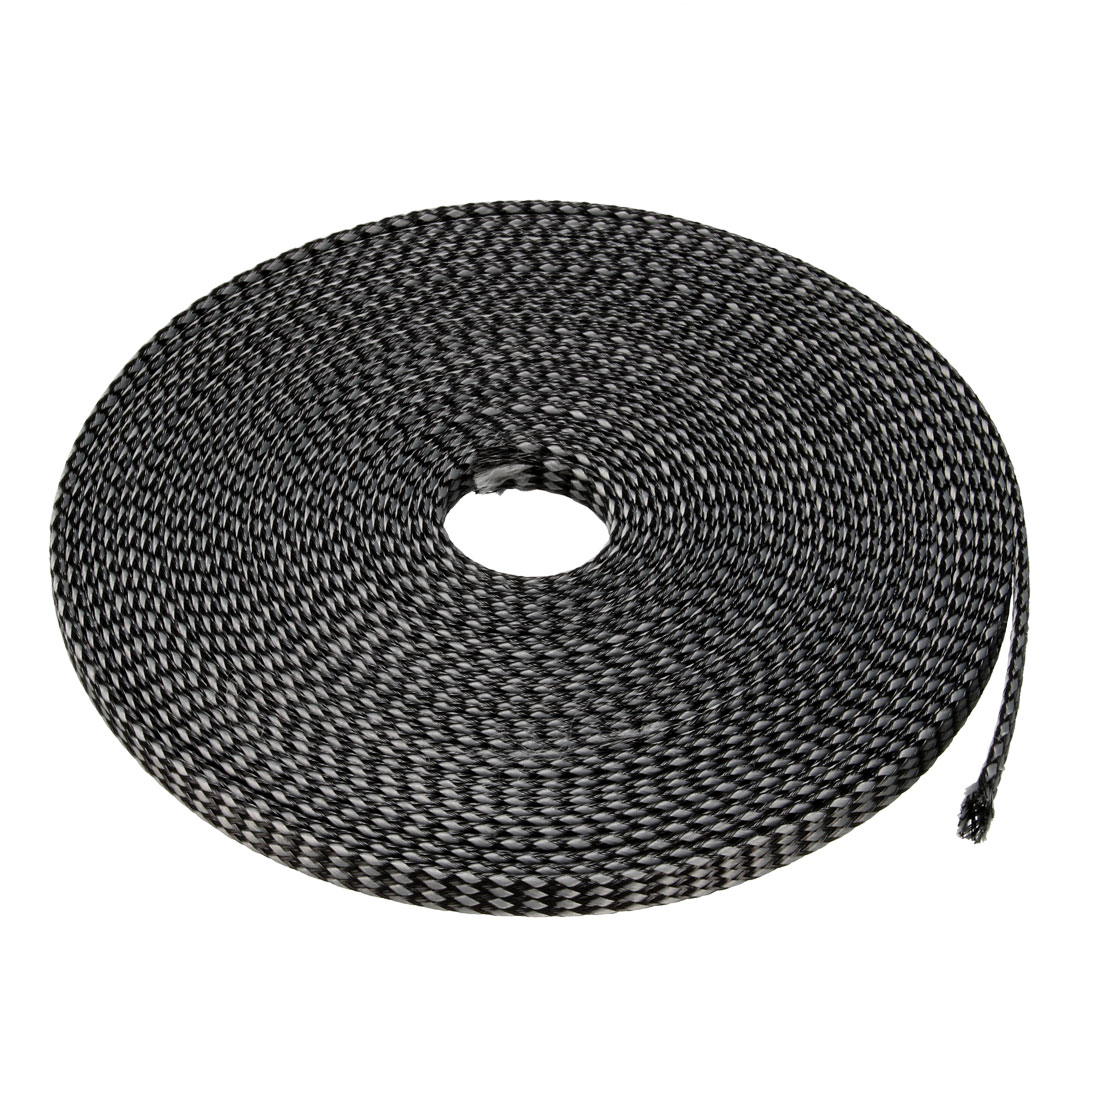 8mm PET Cable Wire Wrap Expandable Braided Sleeving Black Gray 10M Length